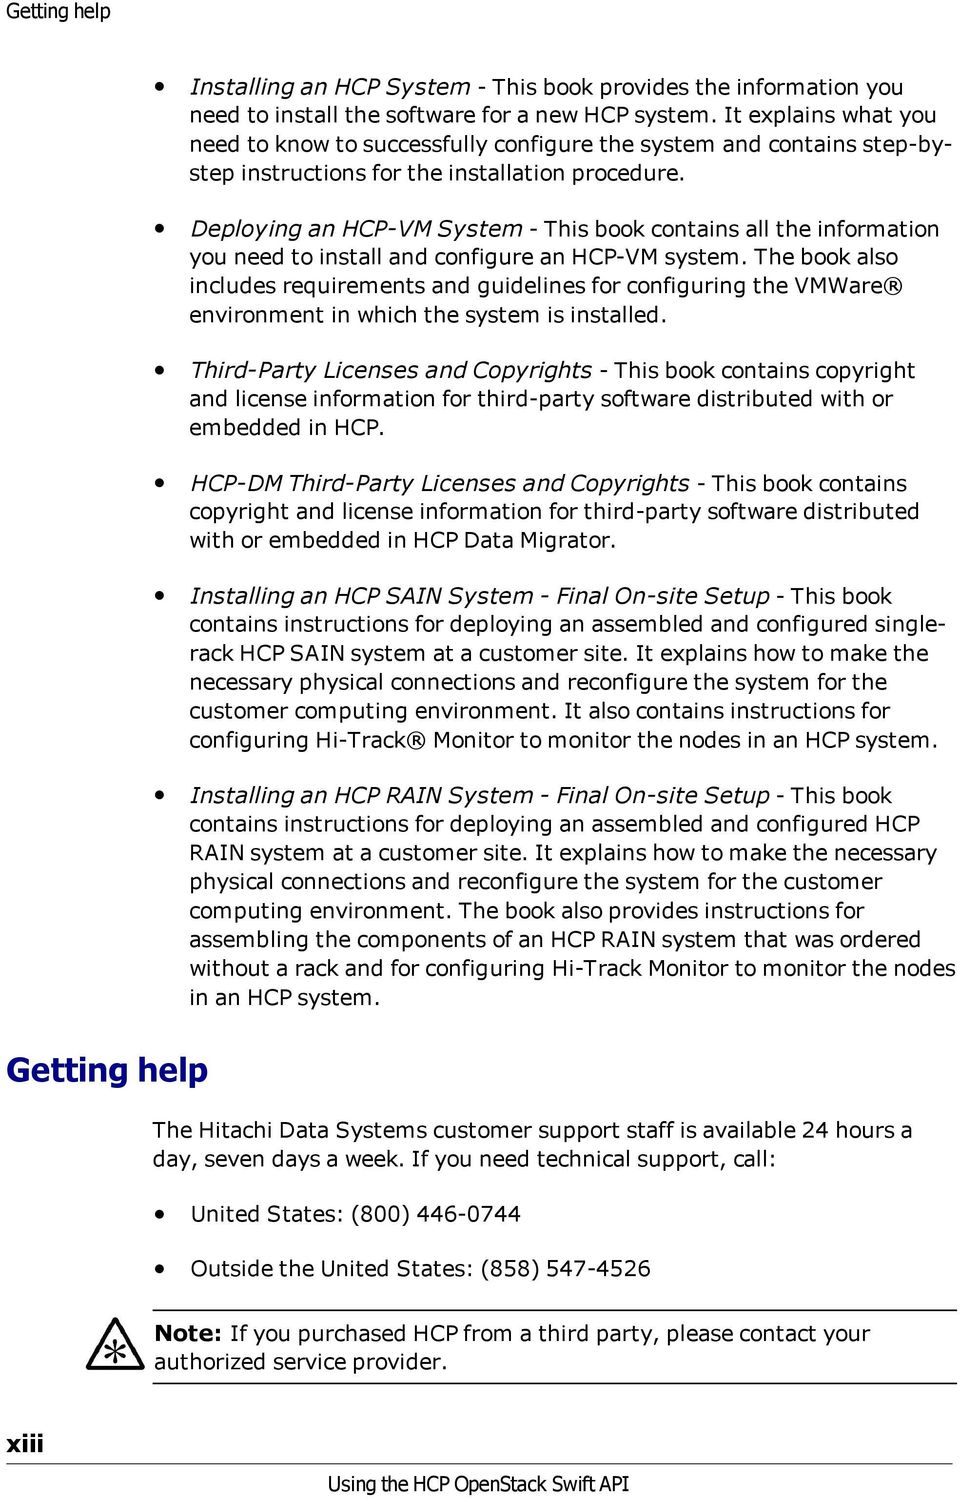 Deploying an HCP-VM System - This book contains all the information you need to install and configure an HCP-VM system.